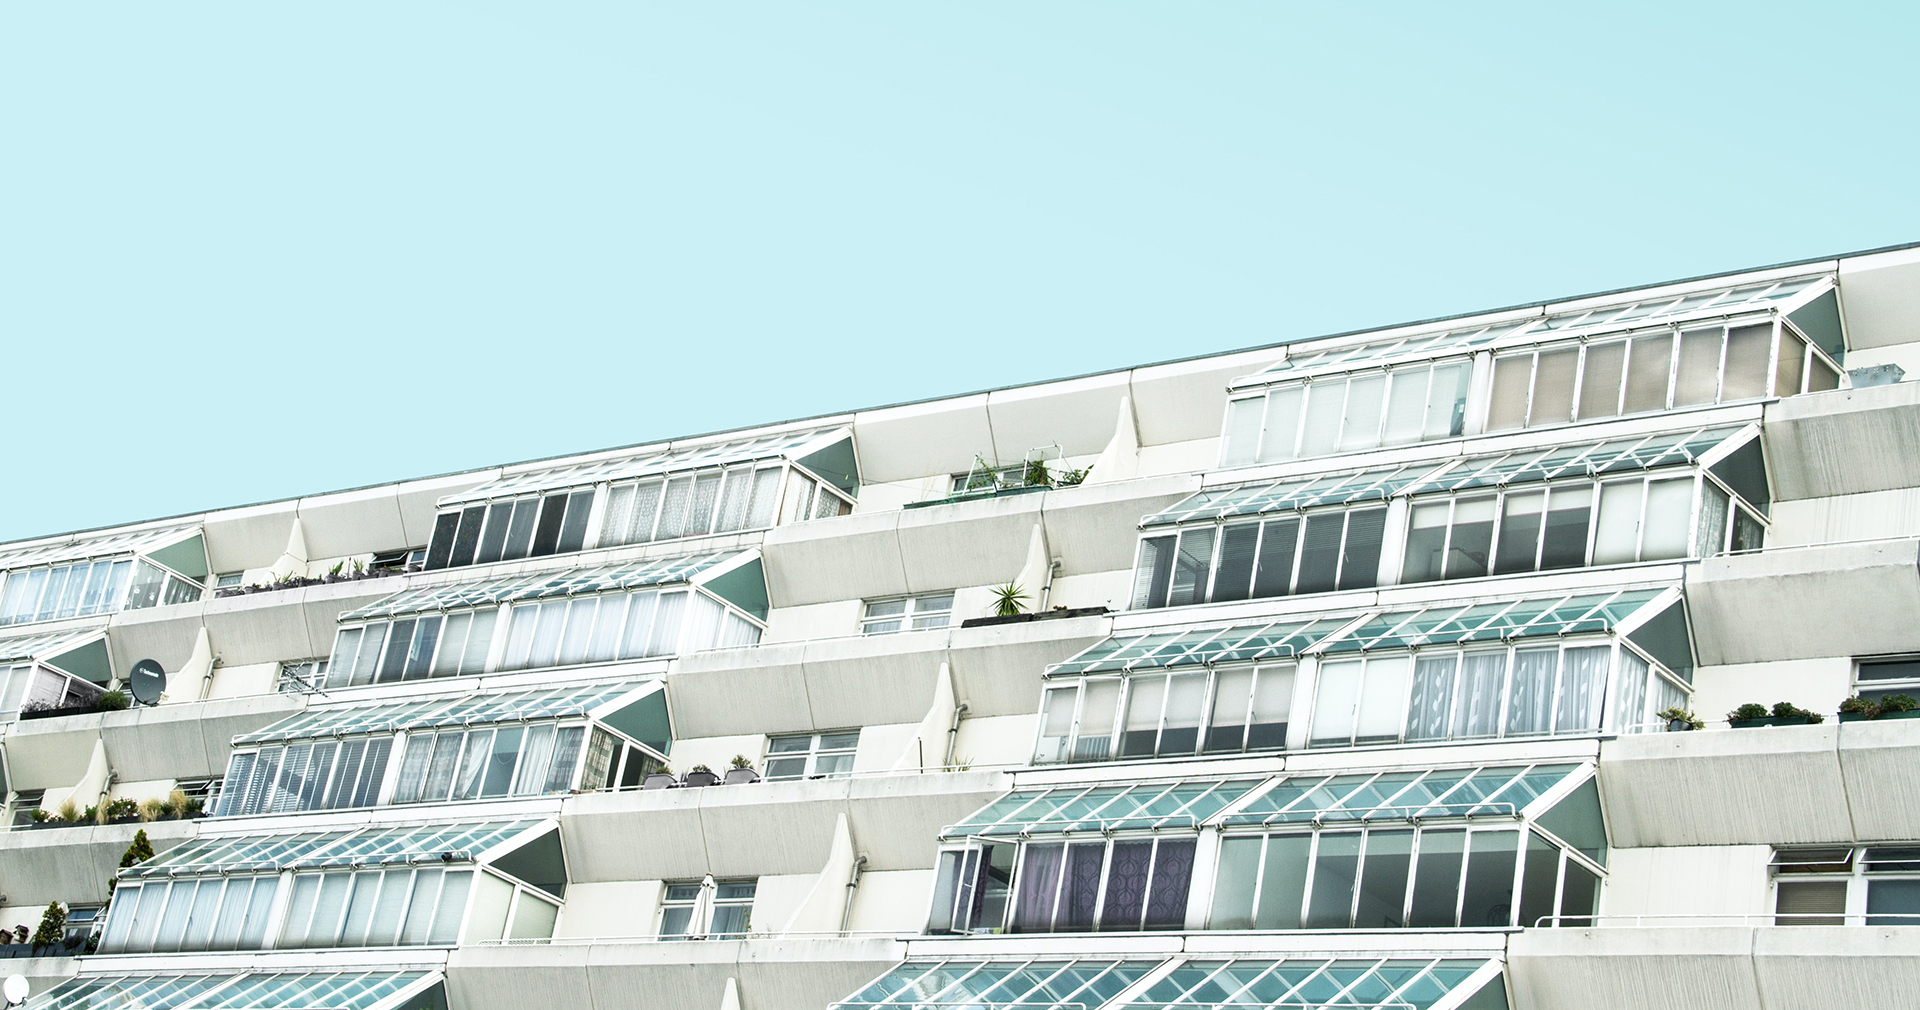 The Brunswick Centre social housing in Bloomsbury, London